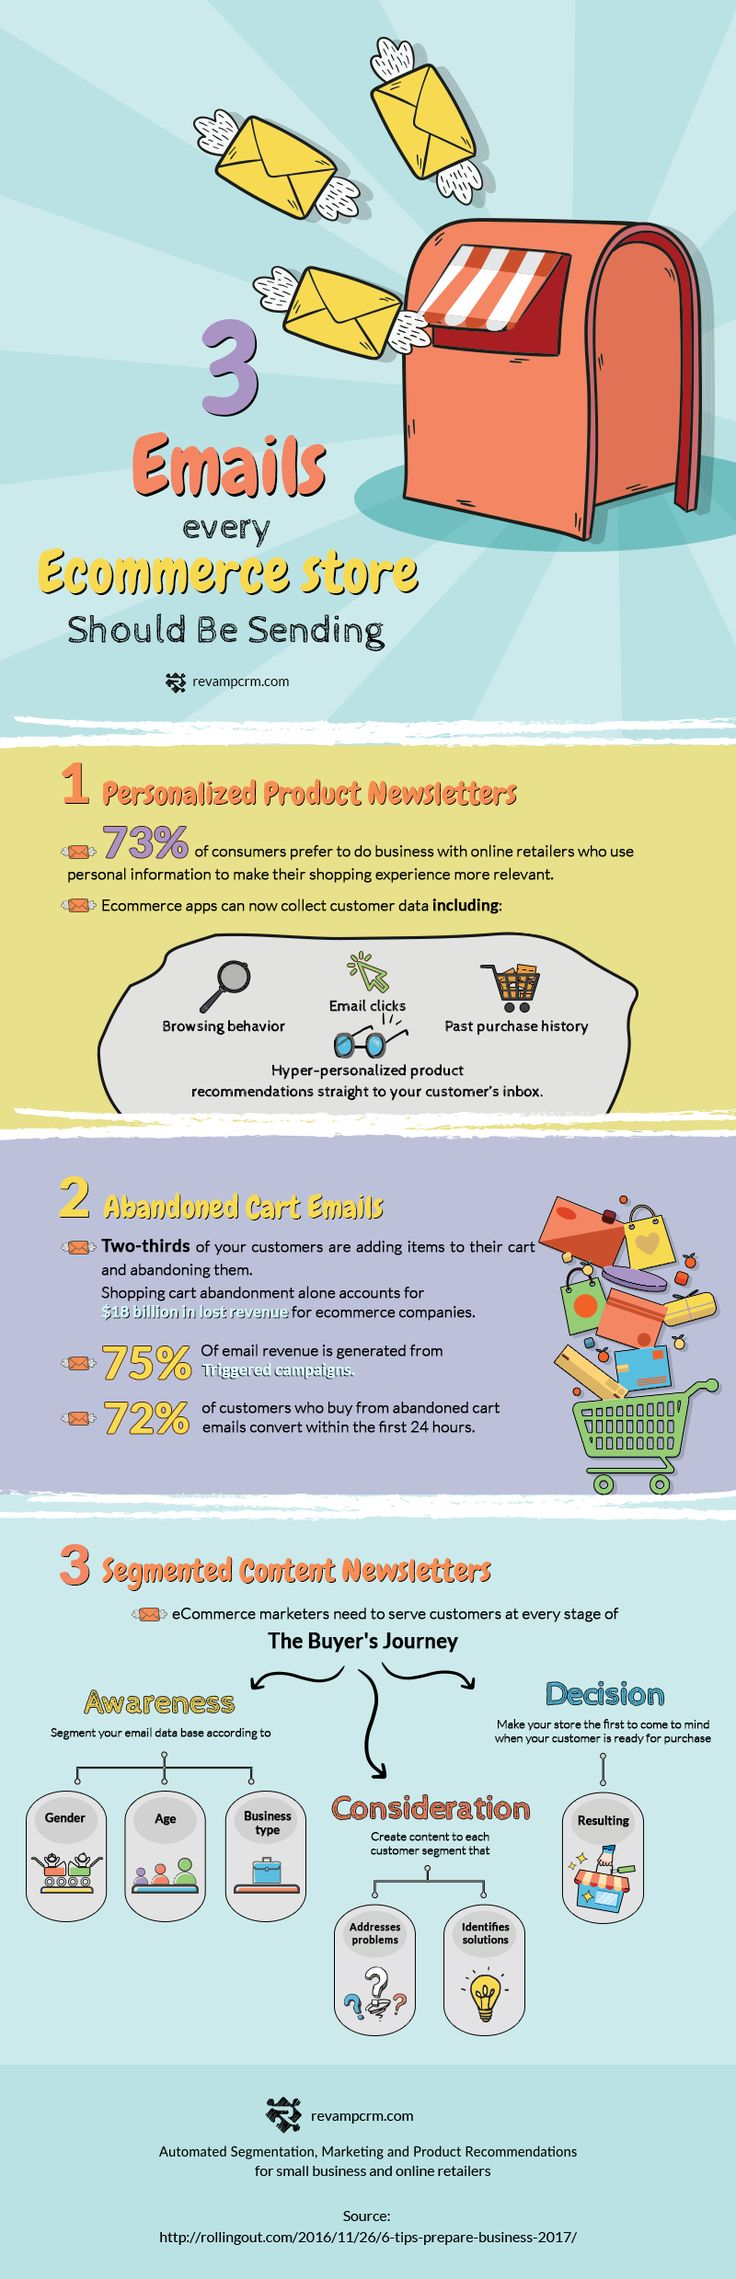 3 Emails Every E commerce Store Should Be Sending - #infographic